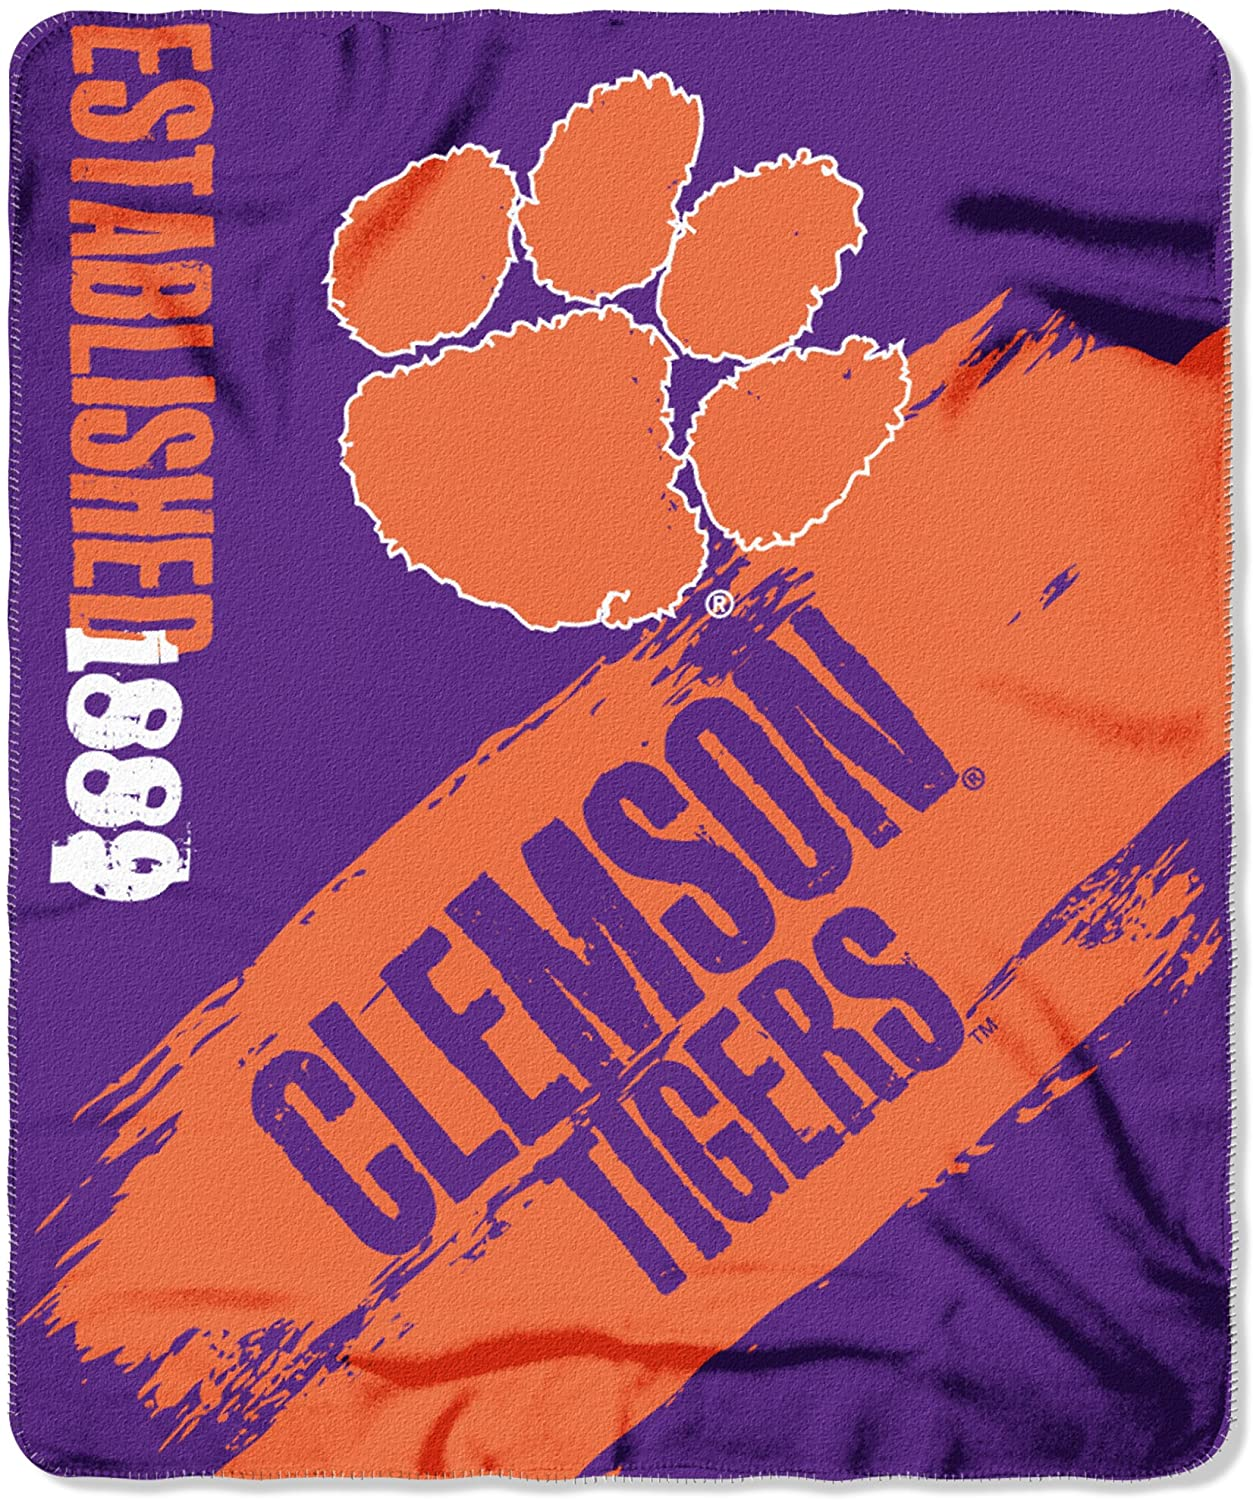 Officially Licensed Ncaa Printed Throw Clemson Tigers Fleece Blanket